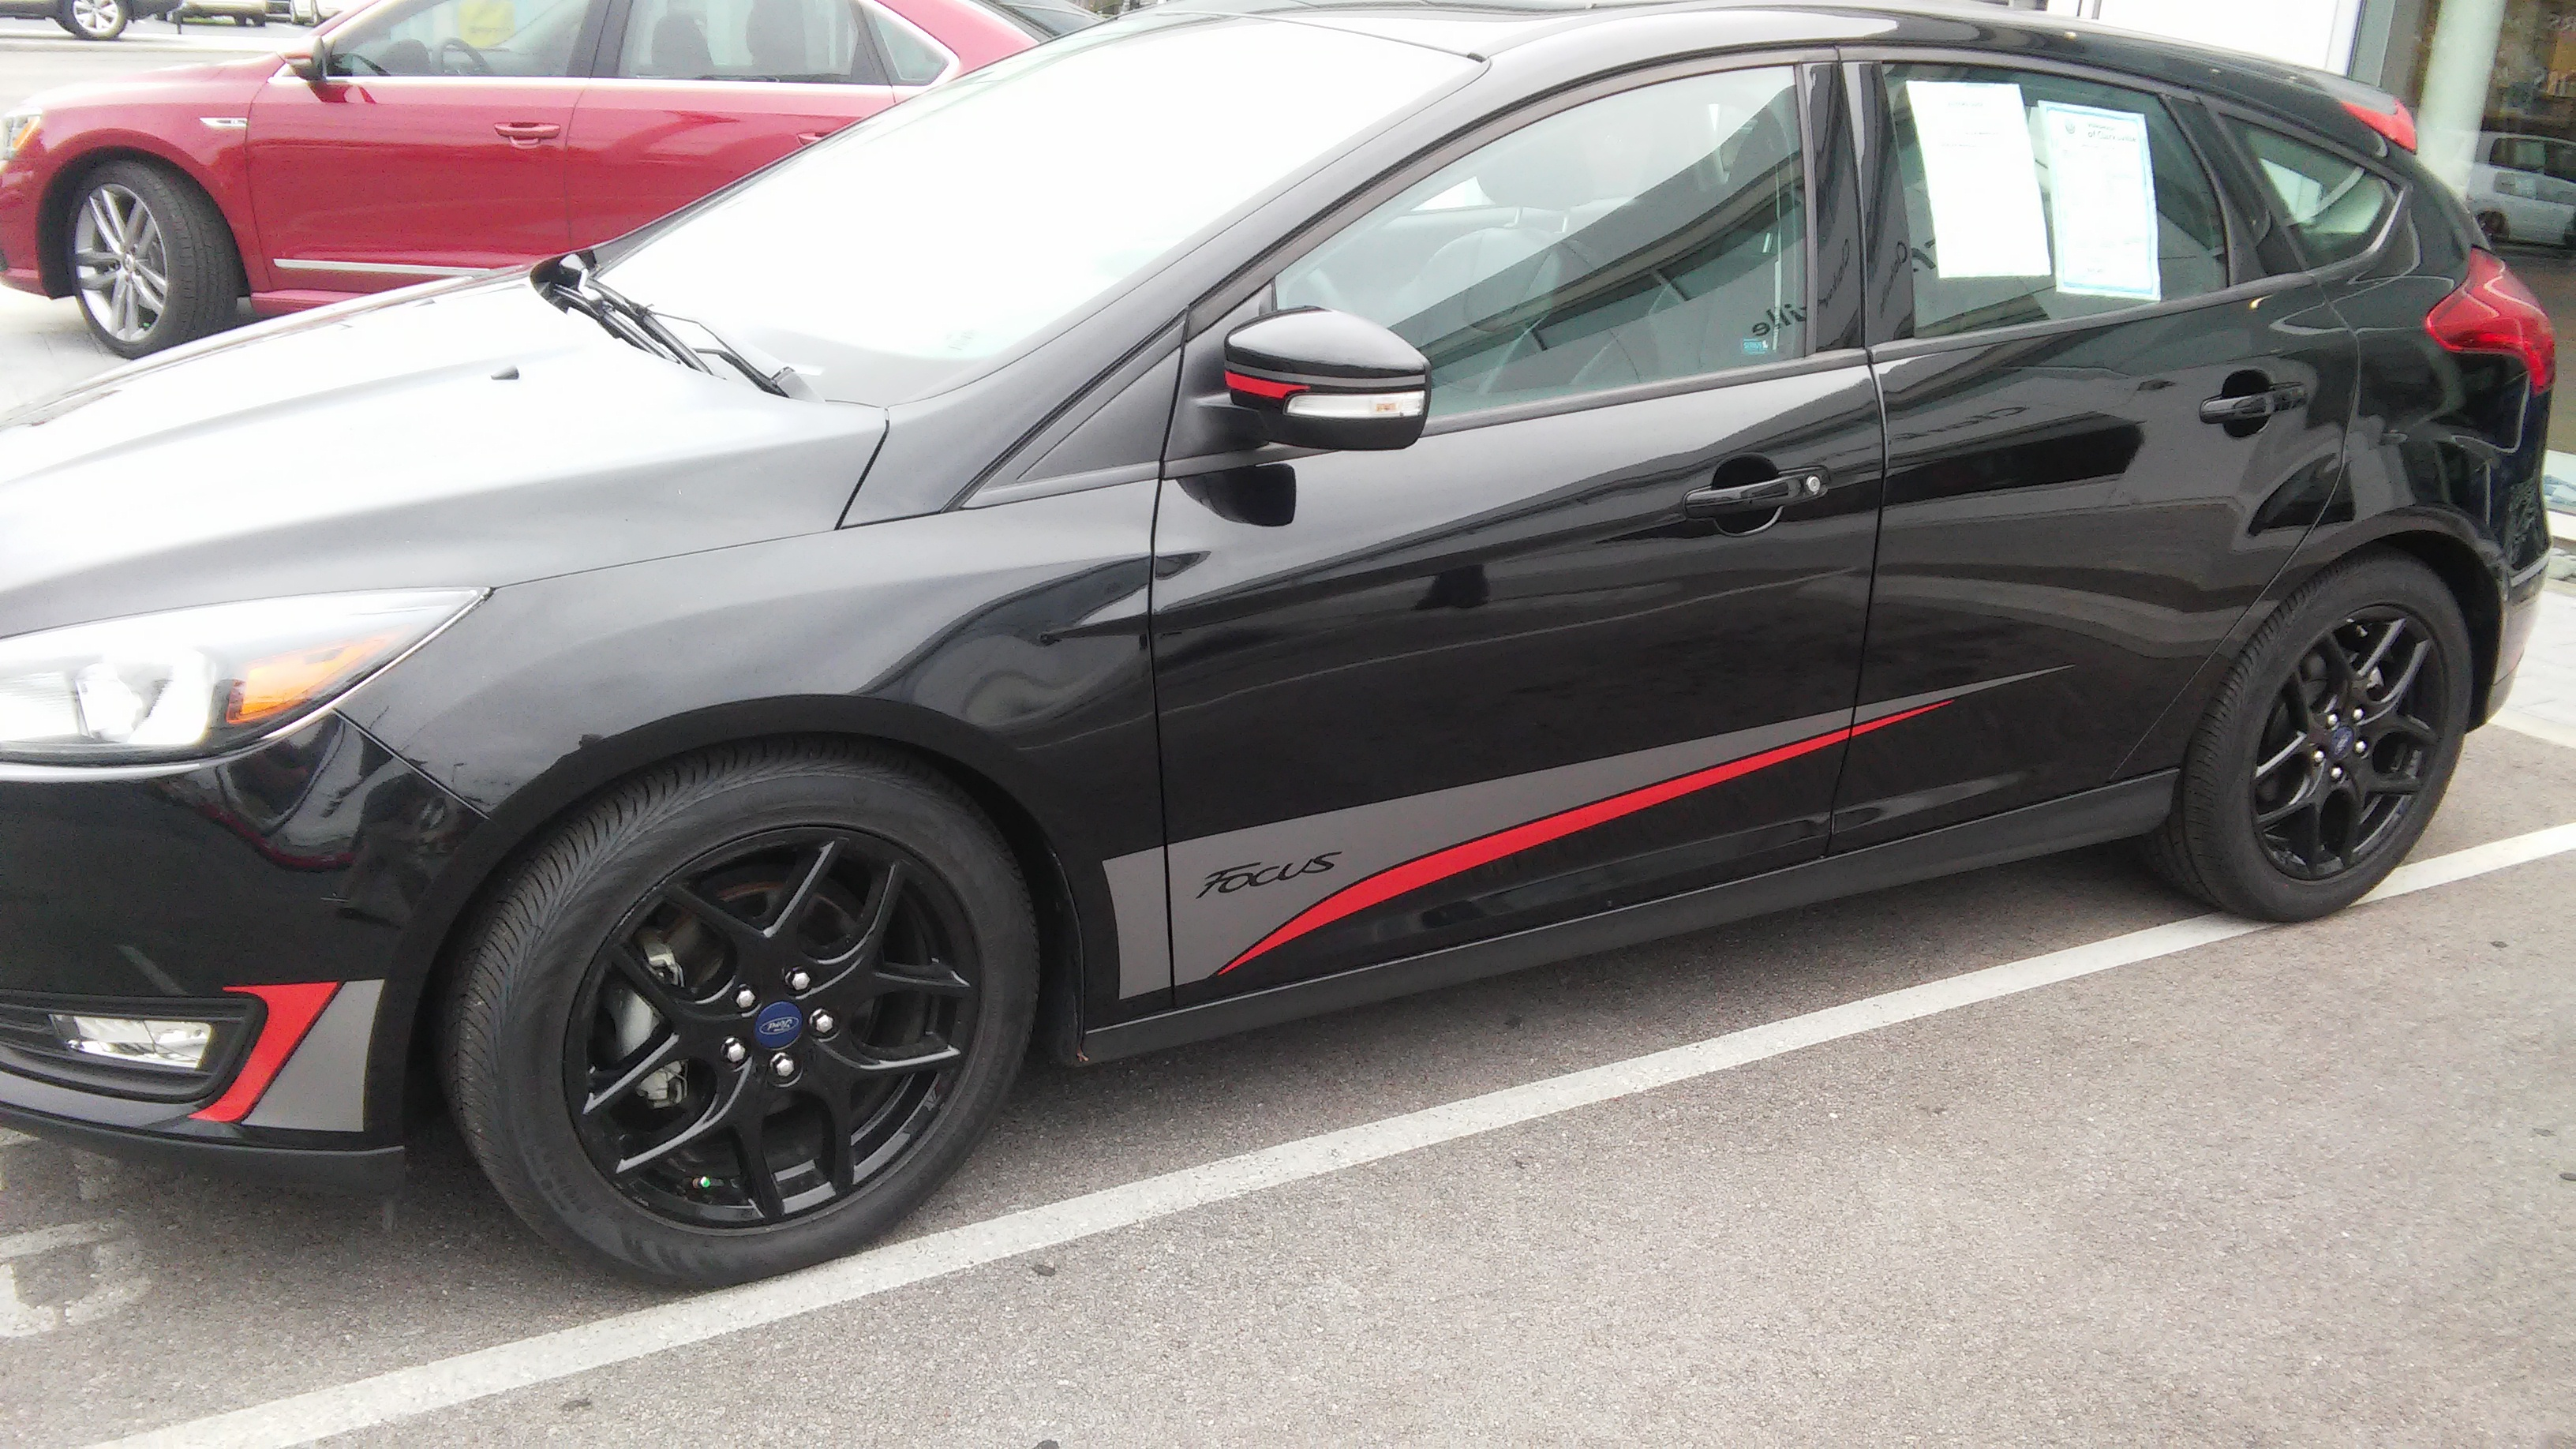 BLADE Vinyl Graphics for 2015-2018 Ford Focus